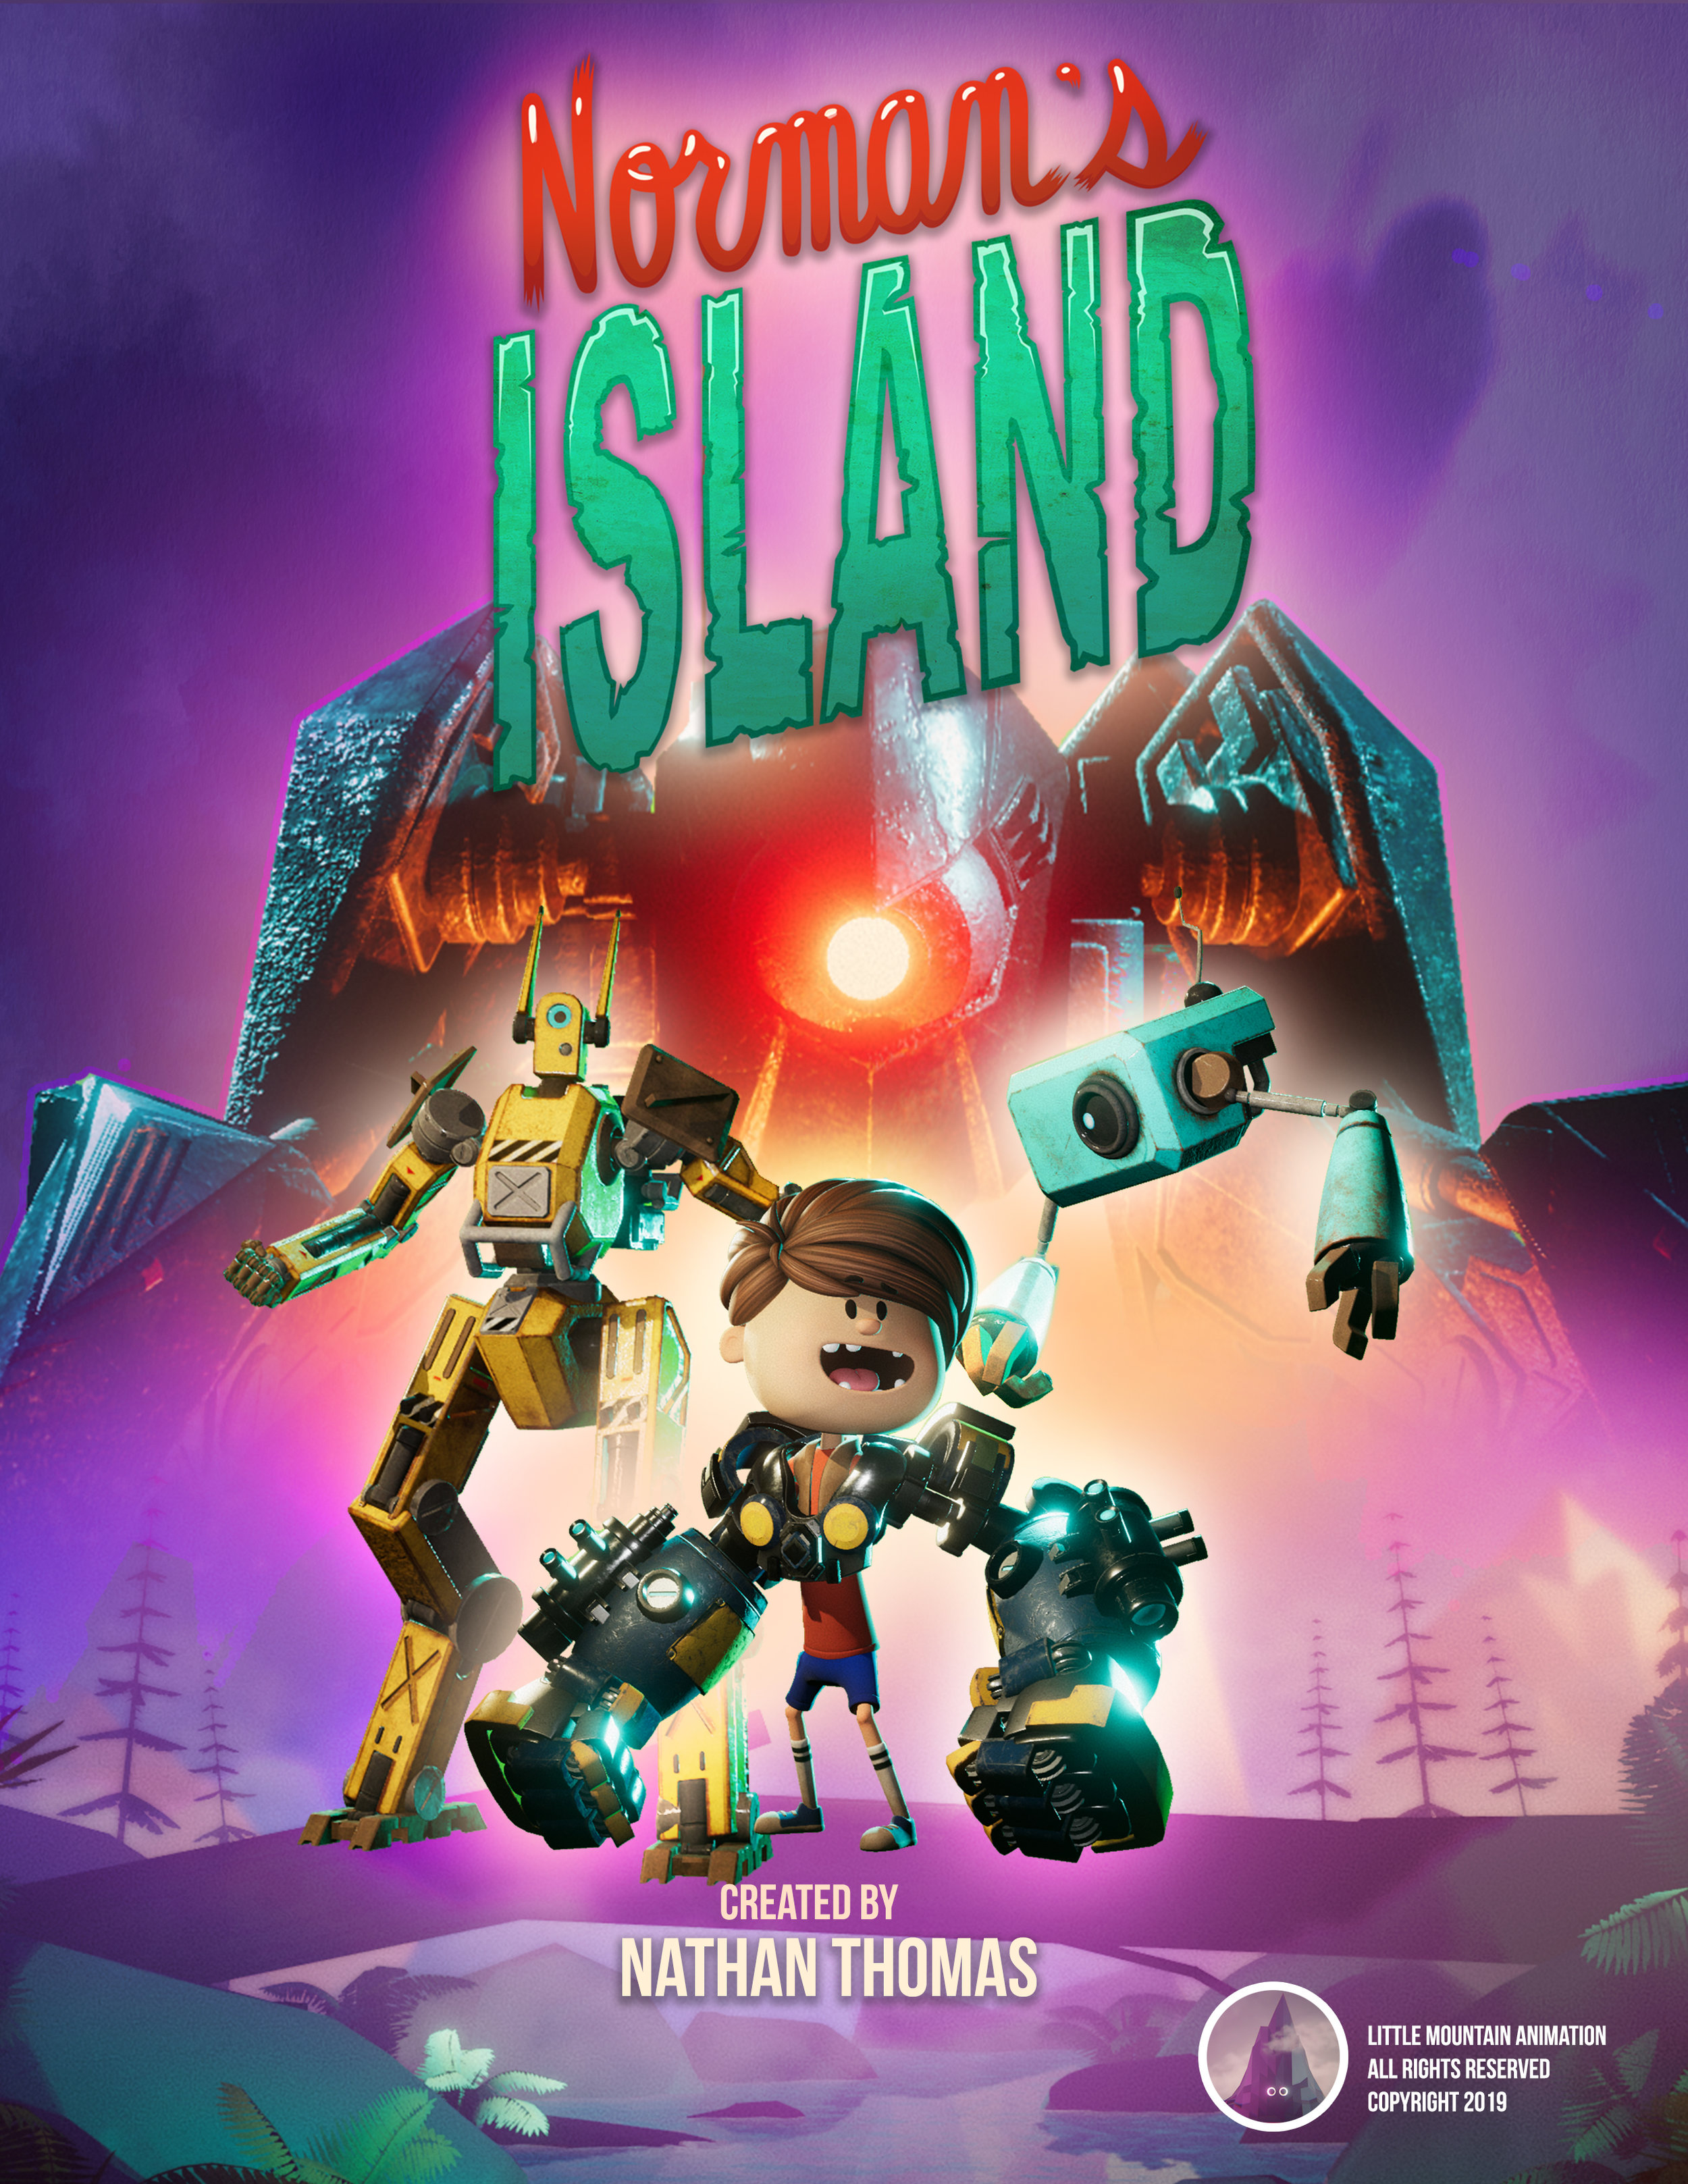 "Our Properties - We are currently developing ""Norman's Island"" as an animated series for kids aged 8-12"